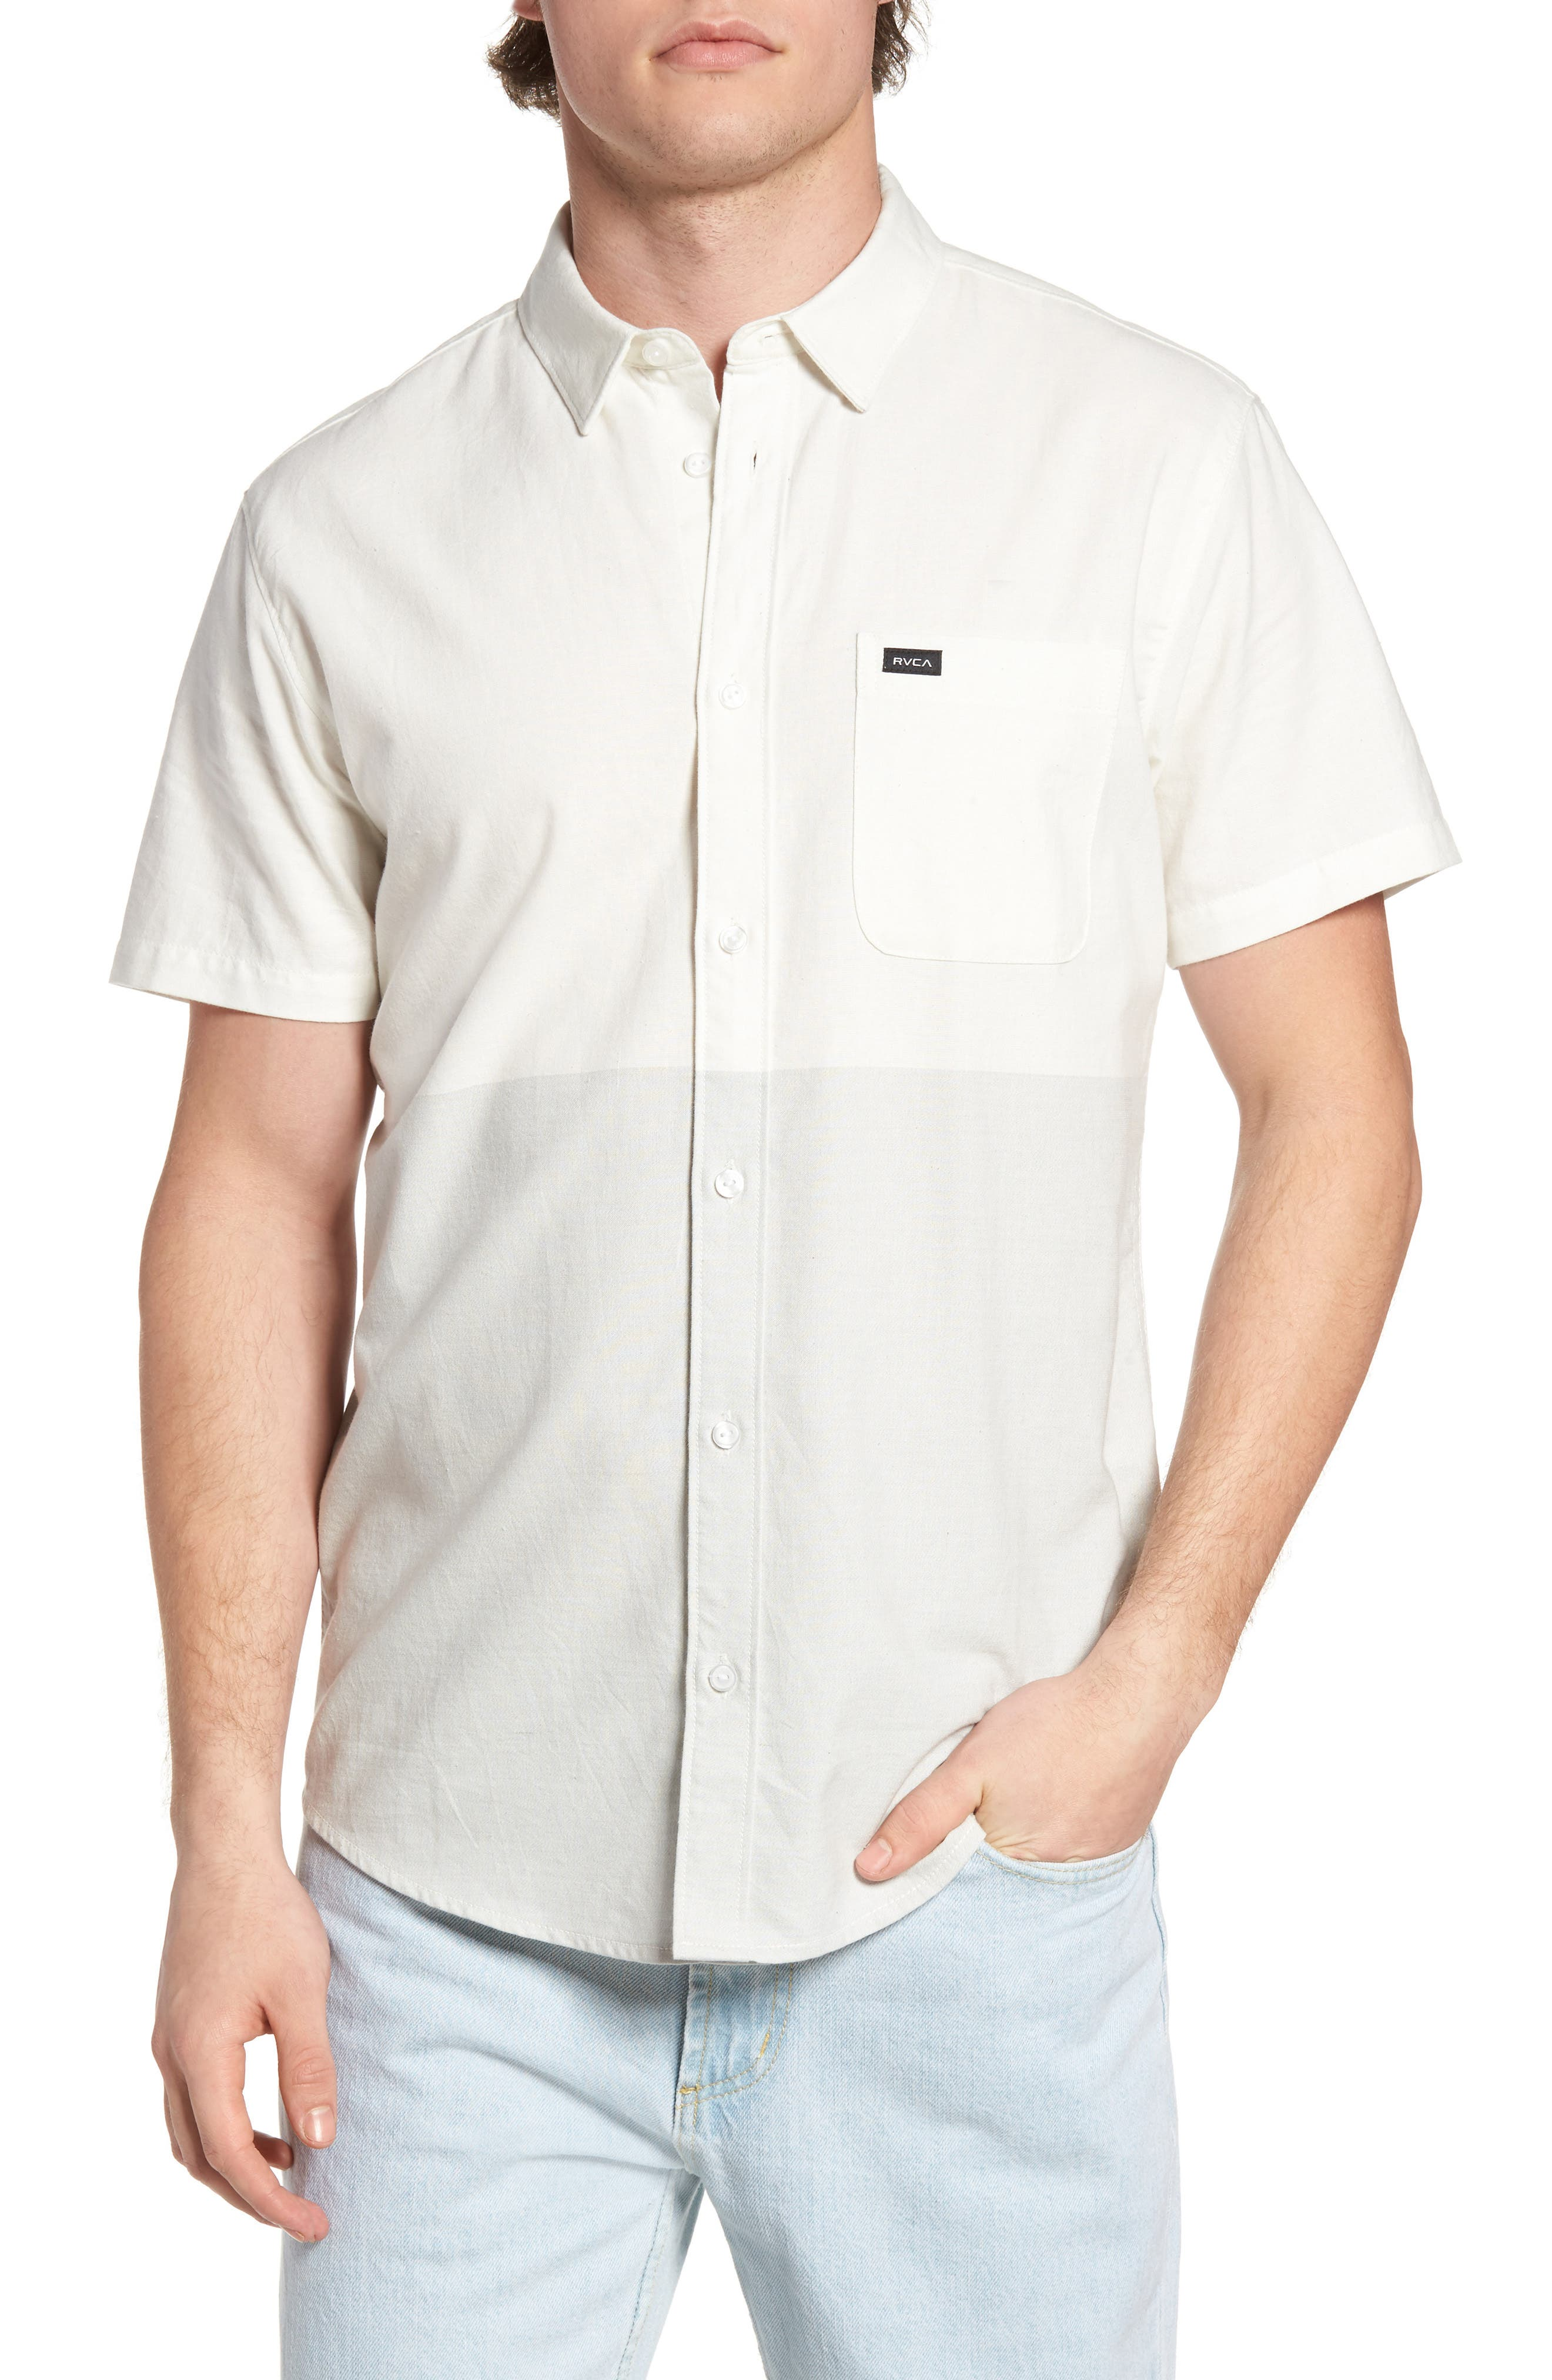 RVCA Big Block Woven Shirt